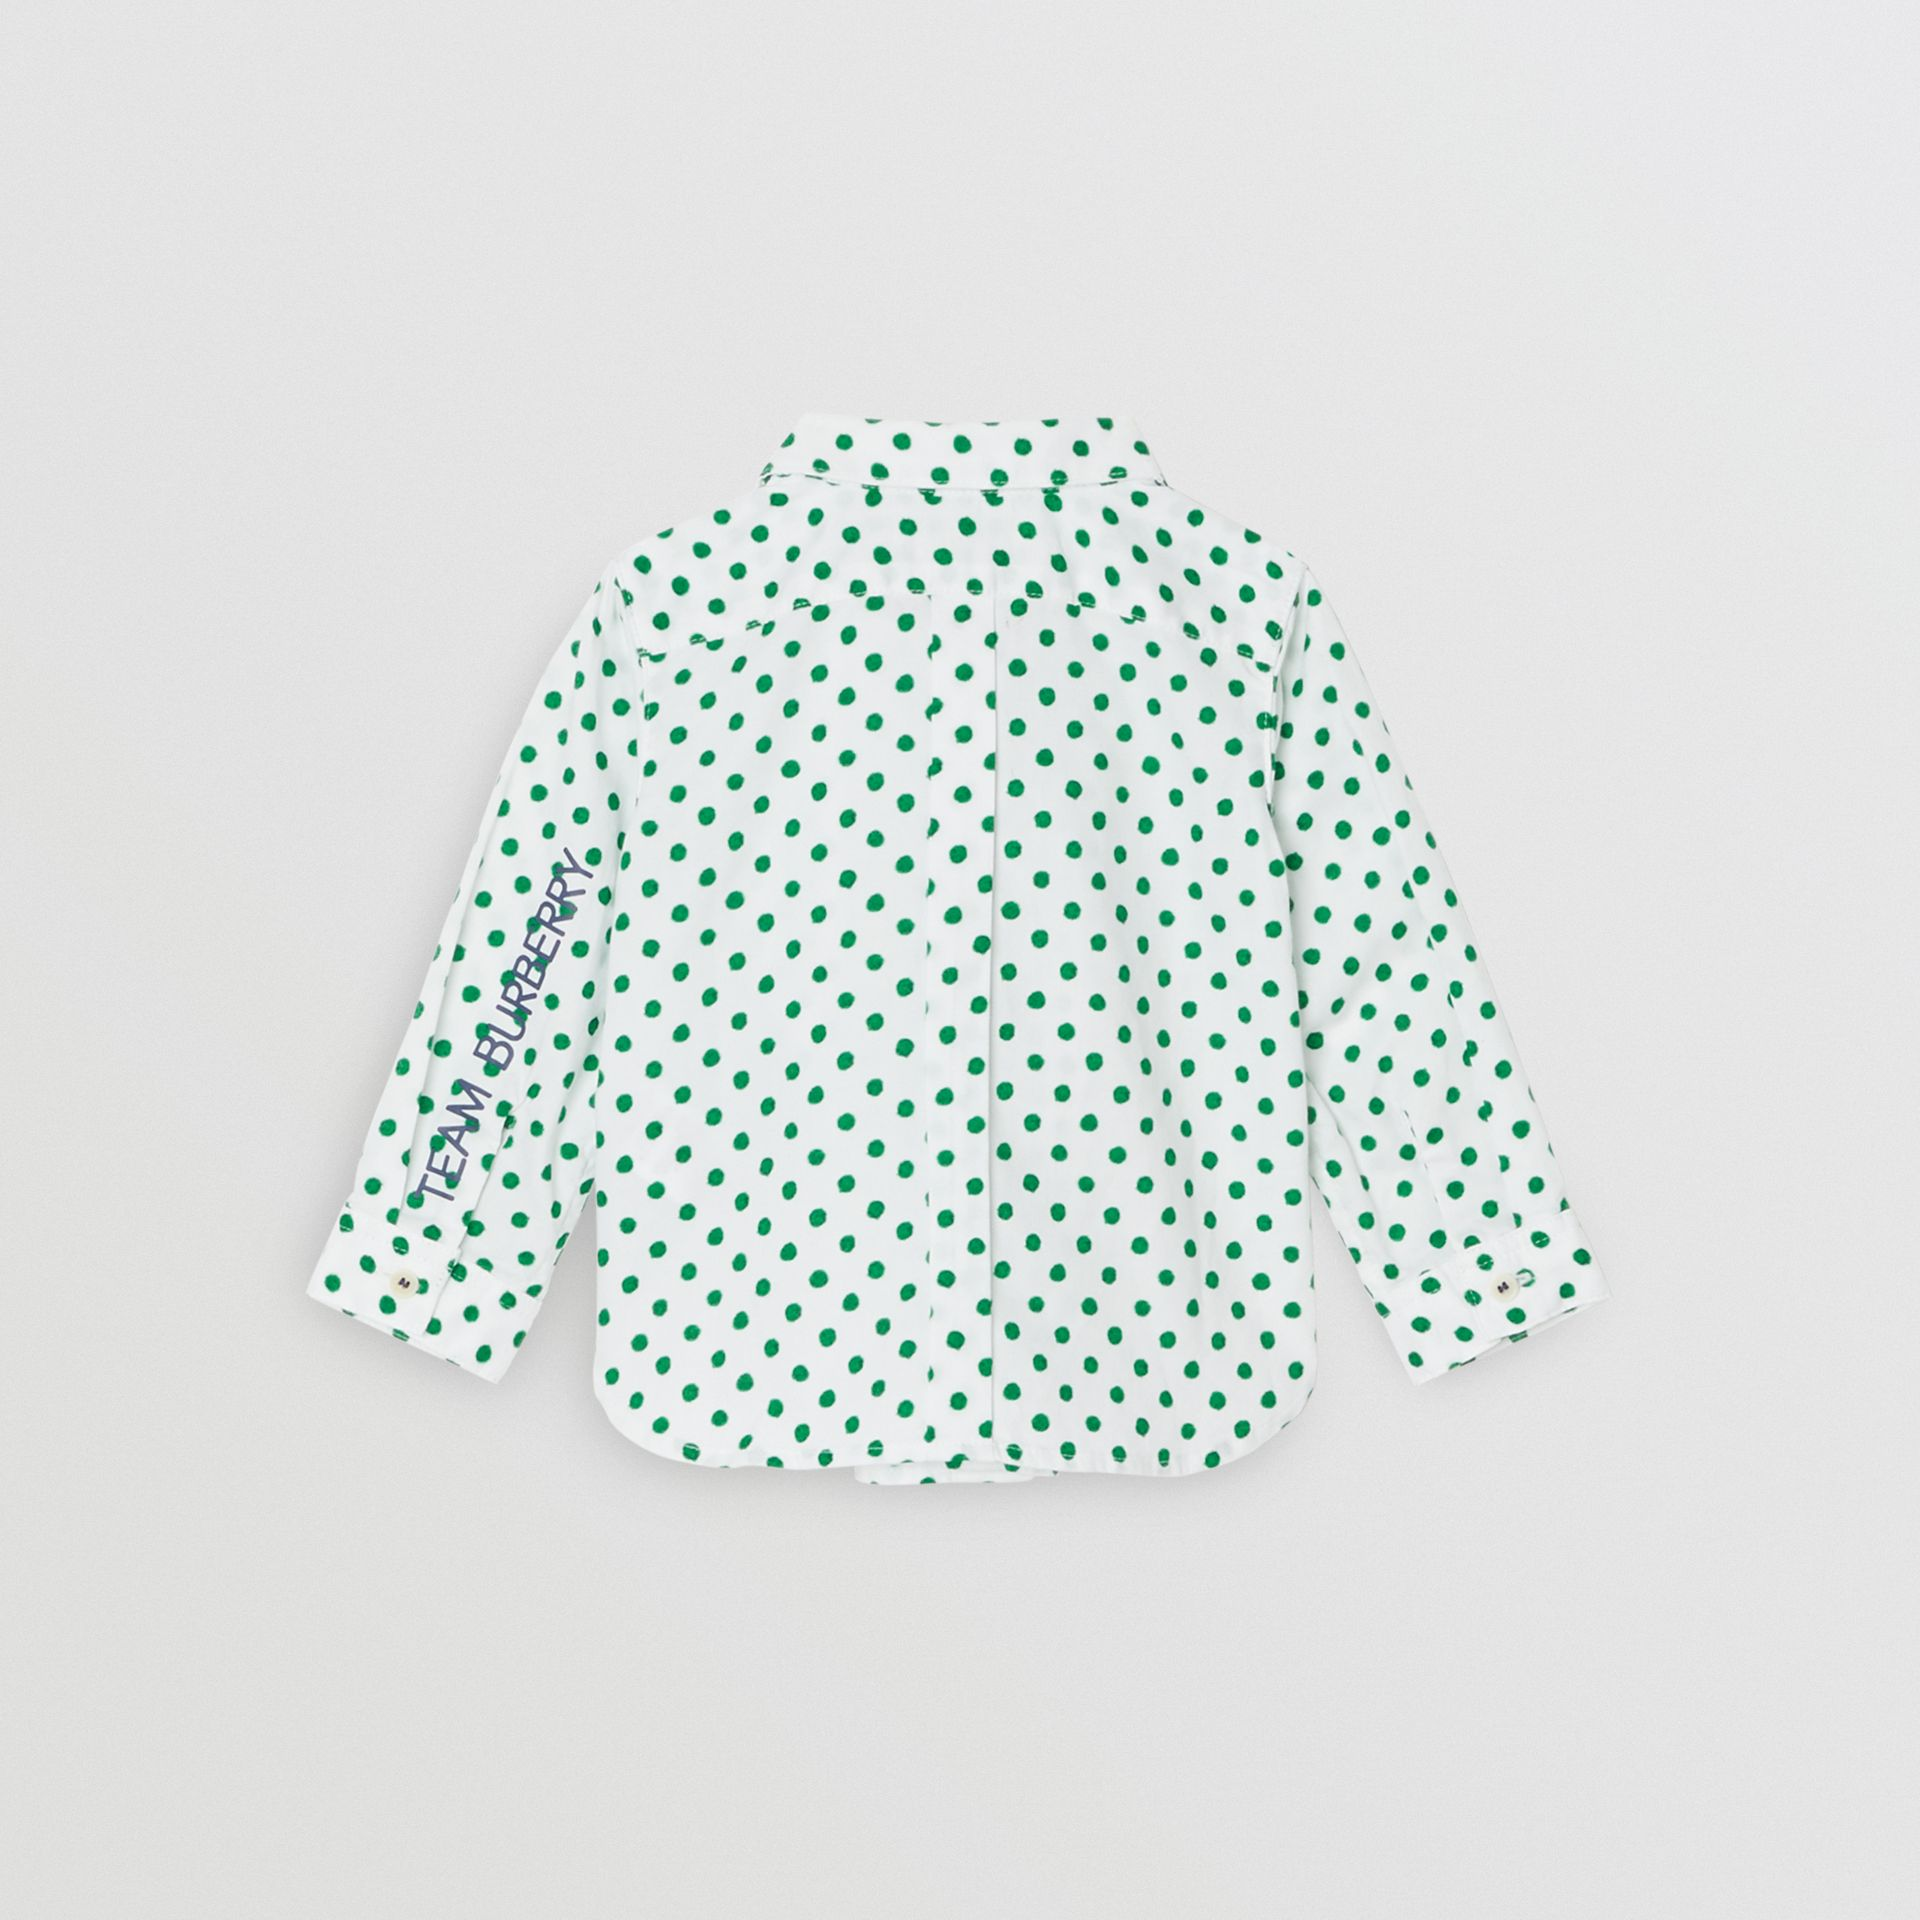 Polka Dot Cotton Oxford Shirt in Emerald Green - Children | Burberry United States - gallery image 3